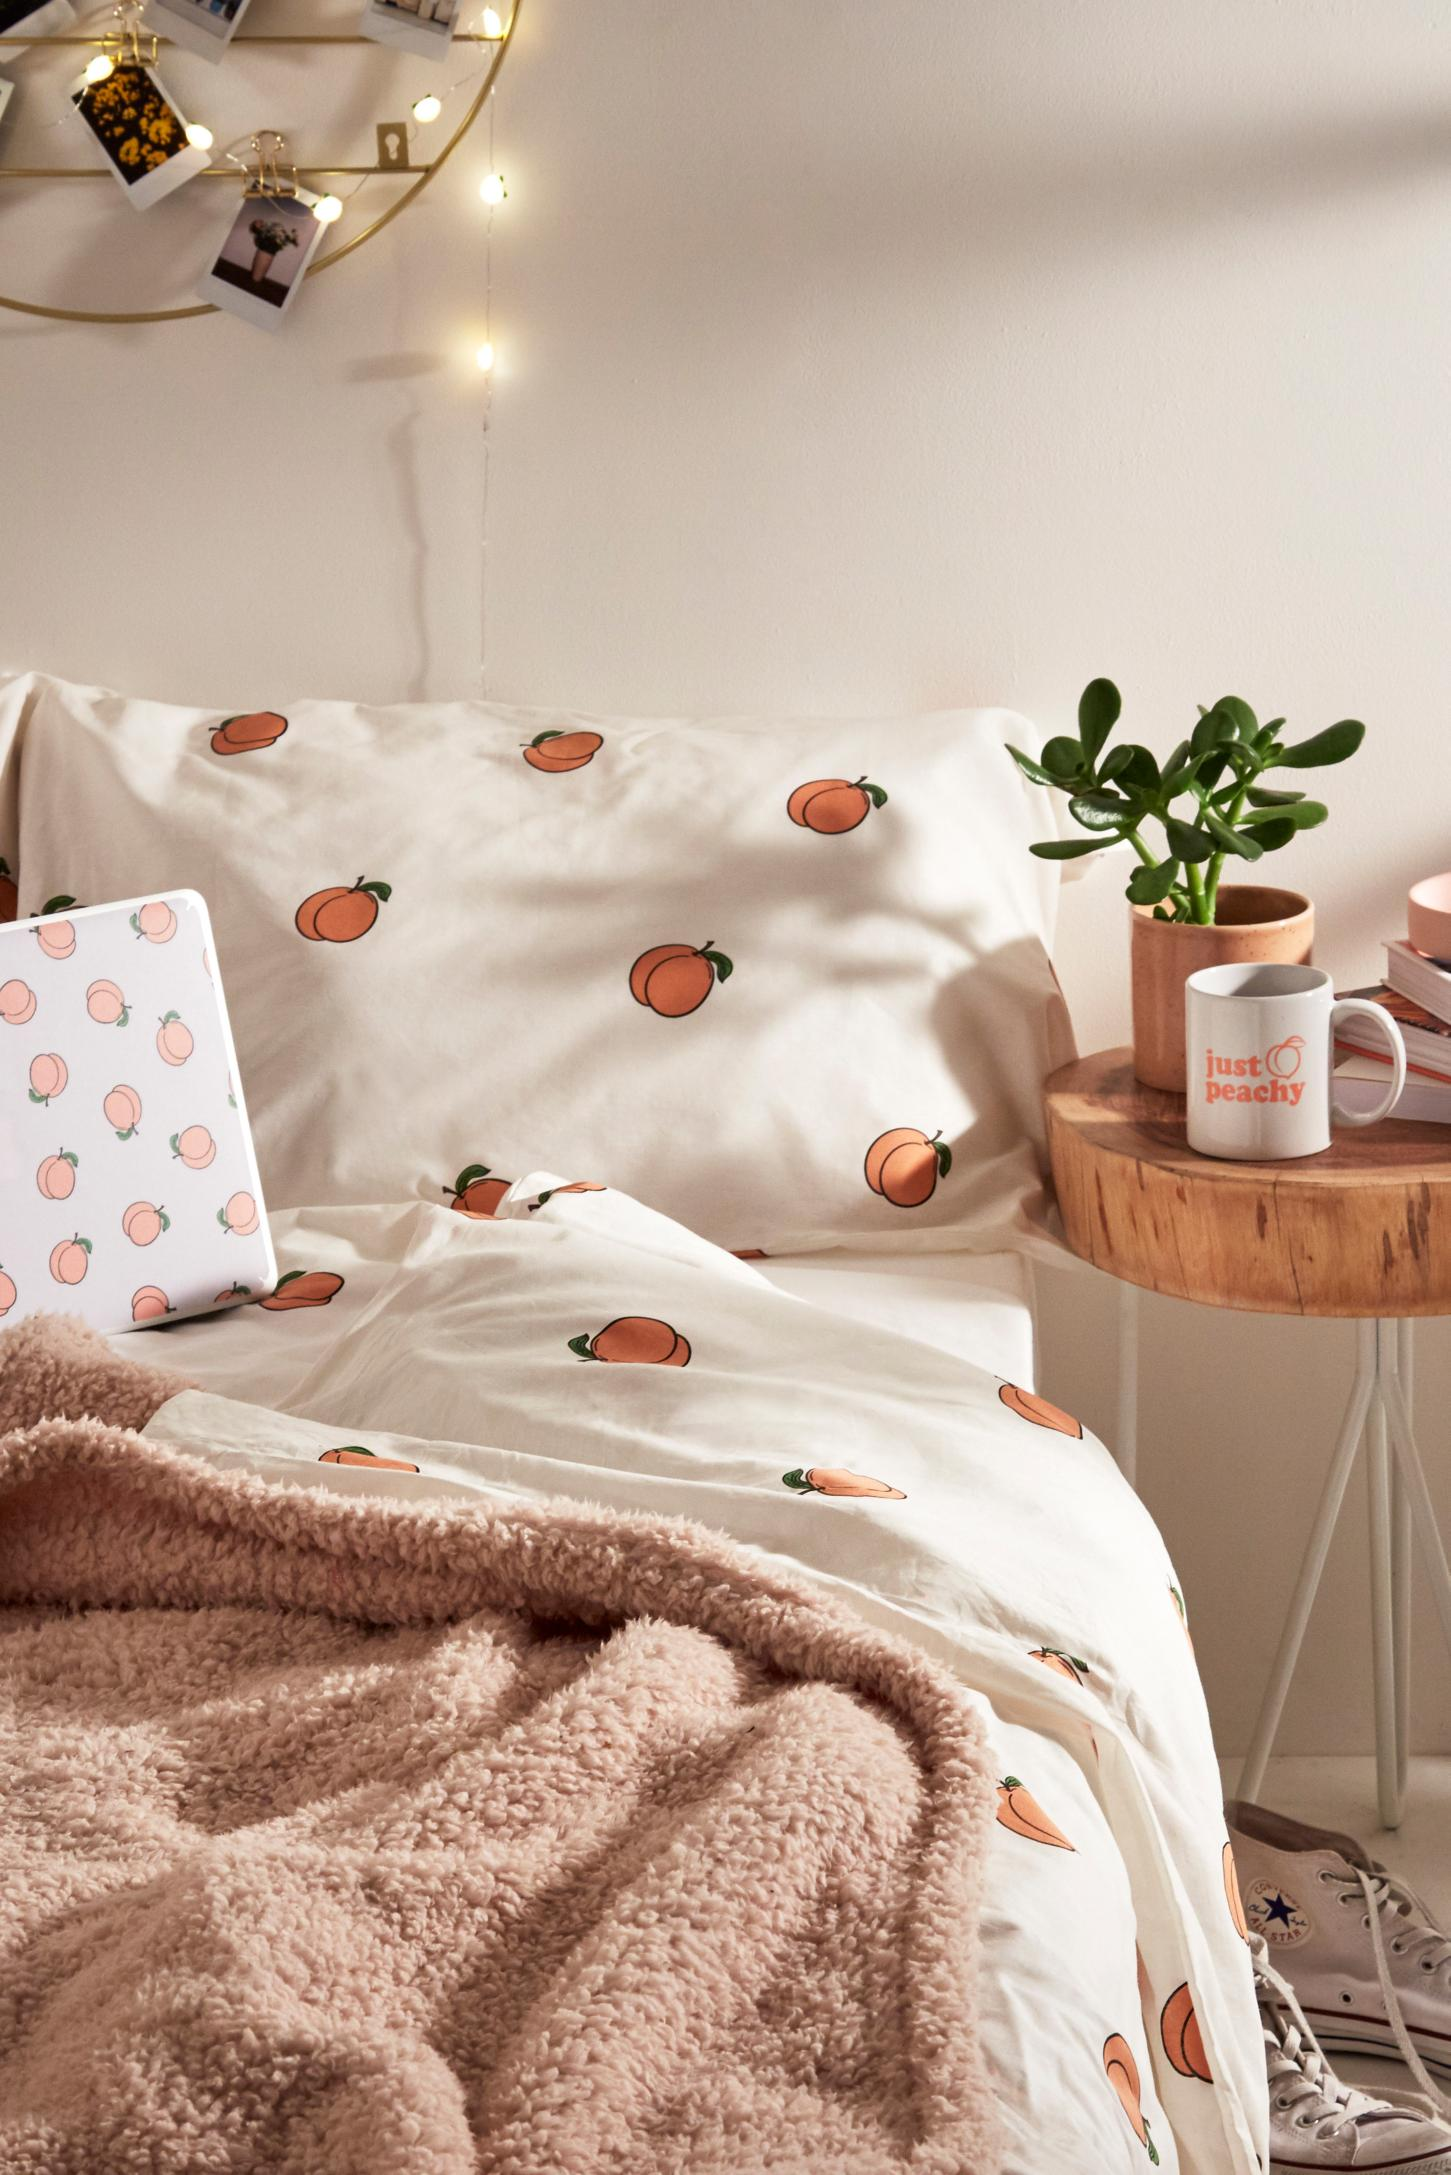 cover bedding comforter duvet gb set rose dusty peach sets b sheets tapestry urban bed hei en duvets outfitters